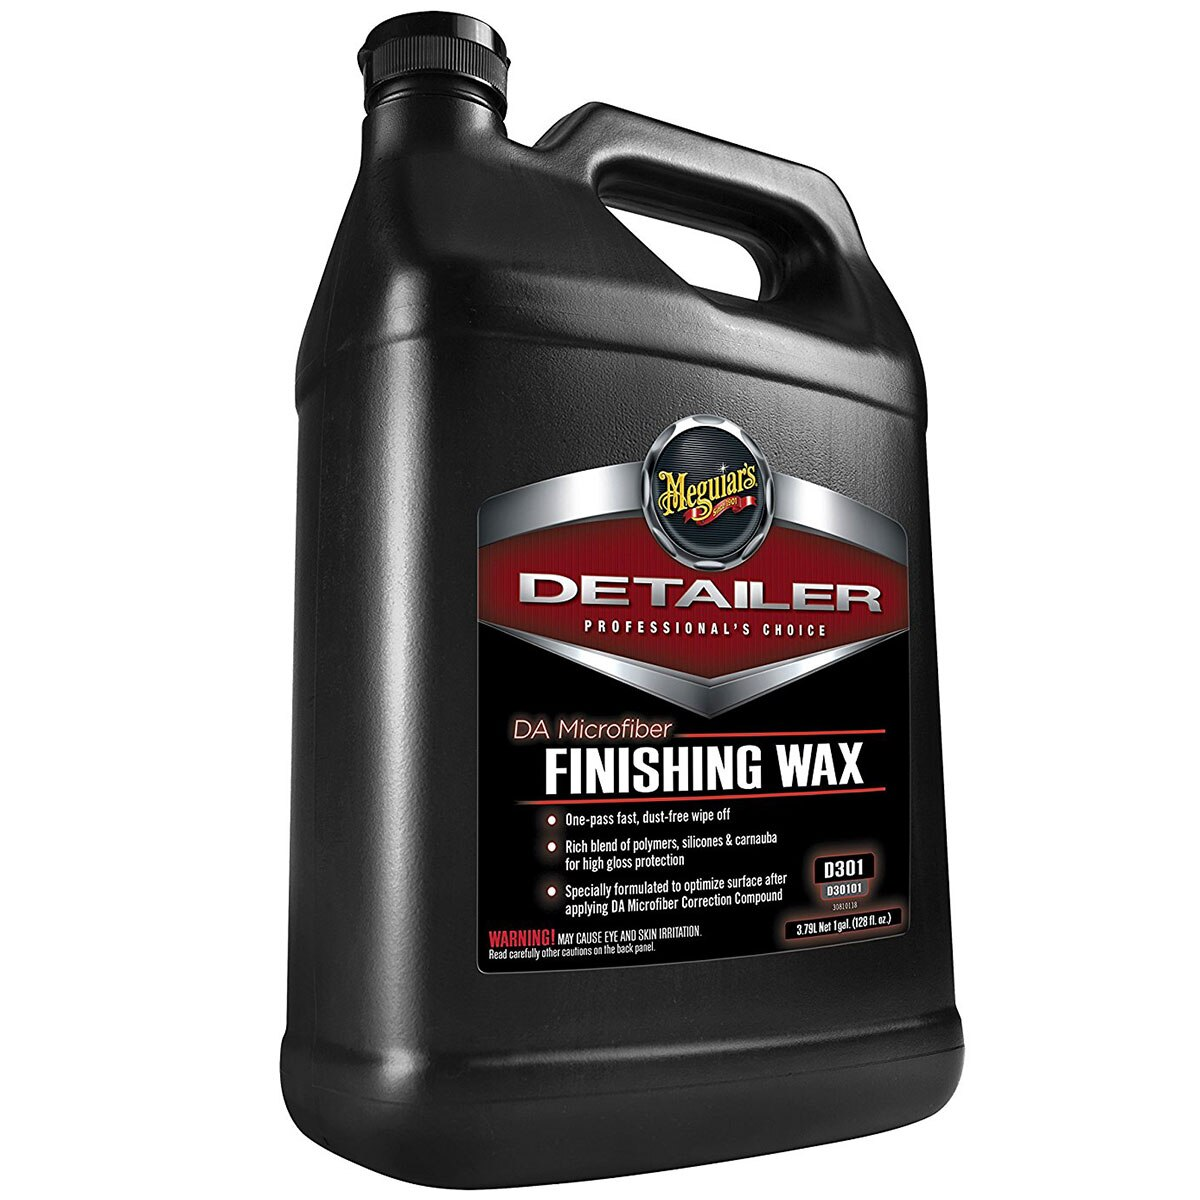 Da Microfiber Finishing Wax Meguiars